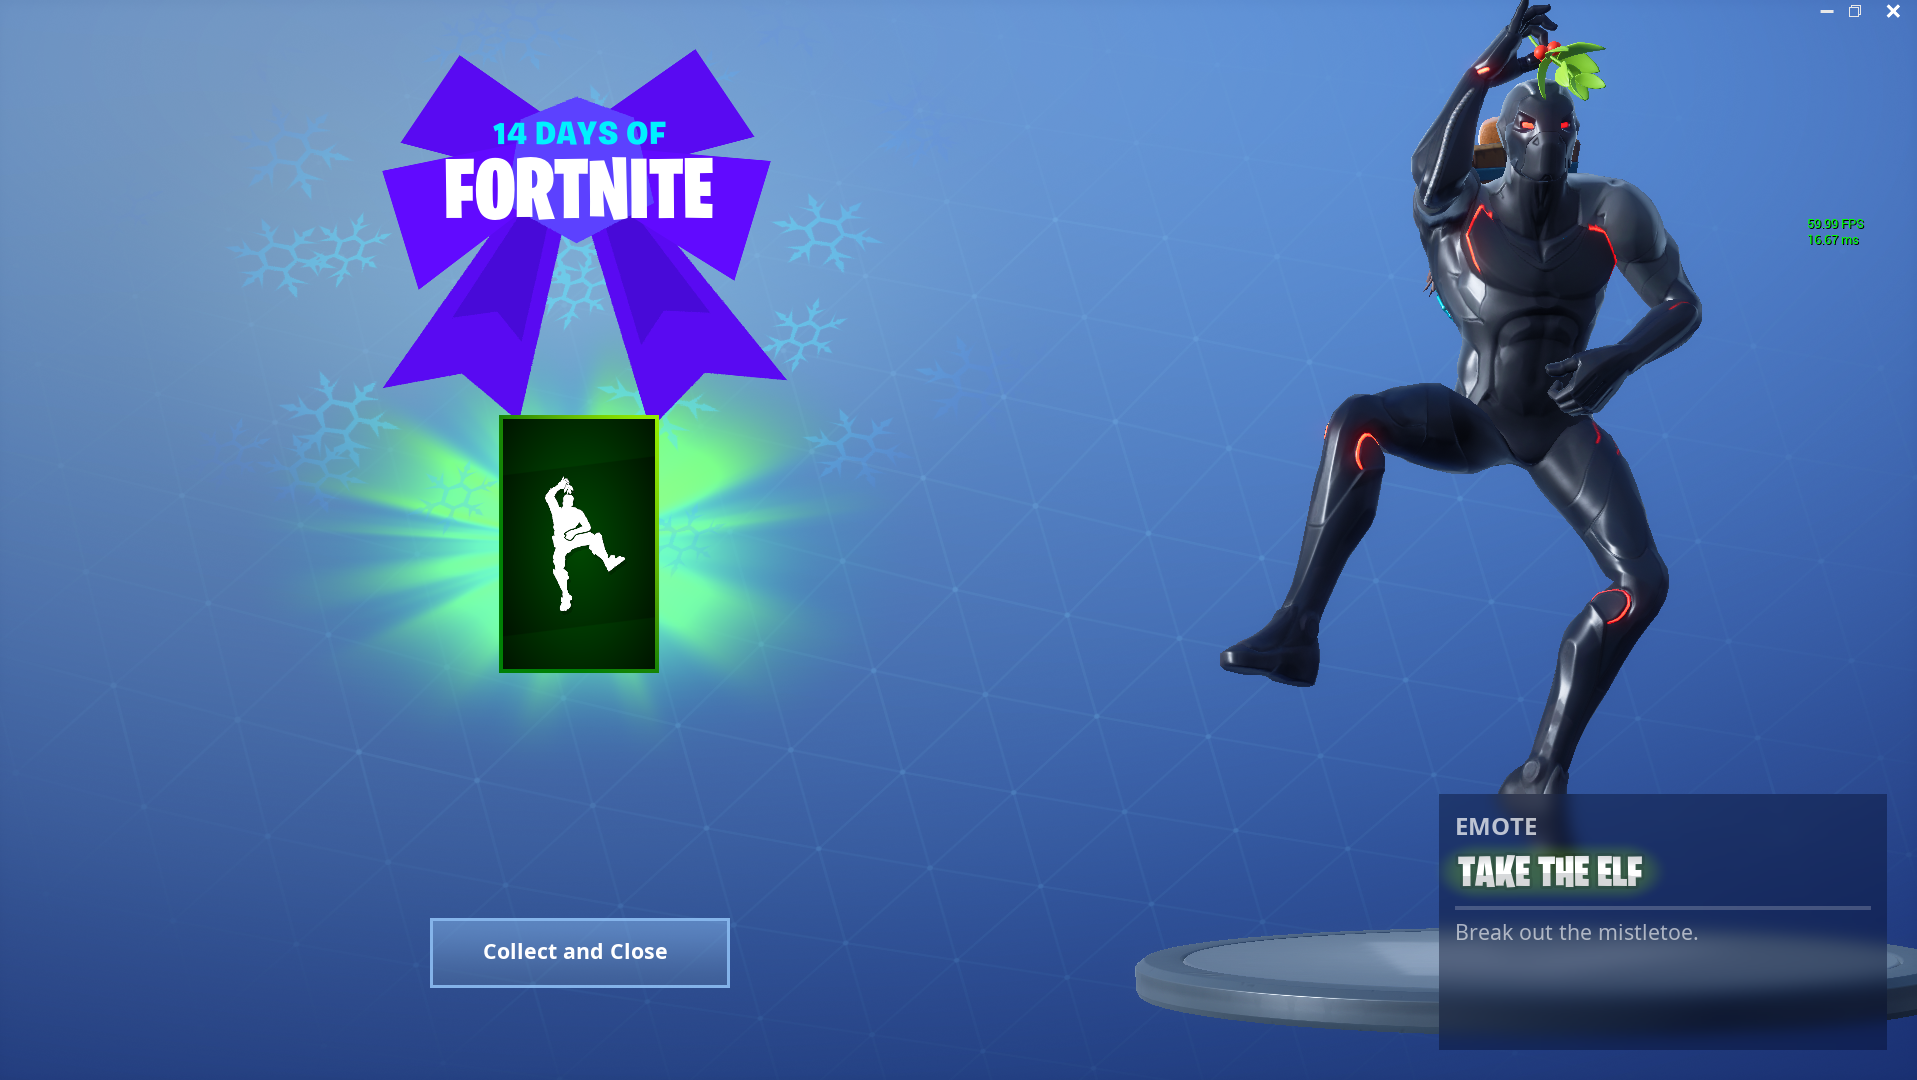 14 days of Fortnite Day 8 Reward - Take the Elf